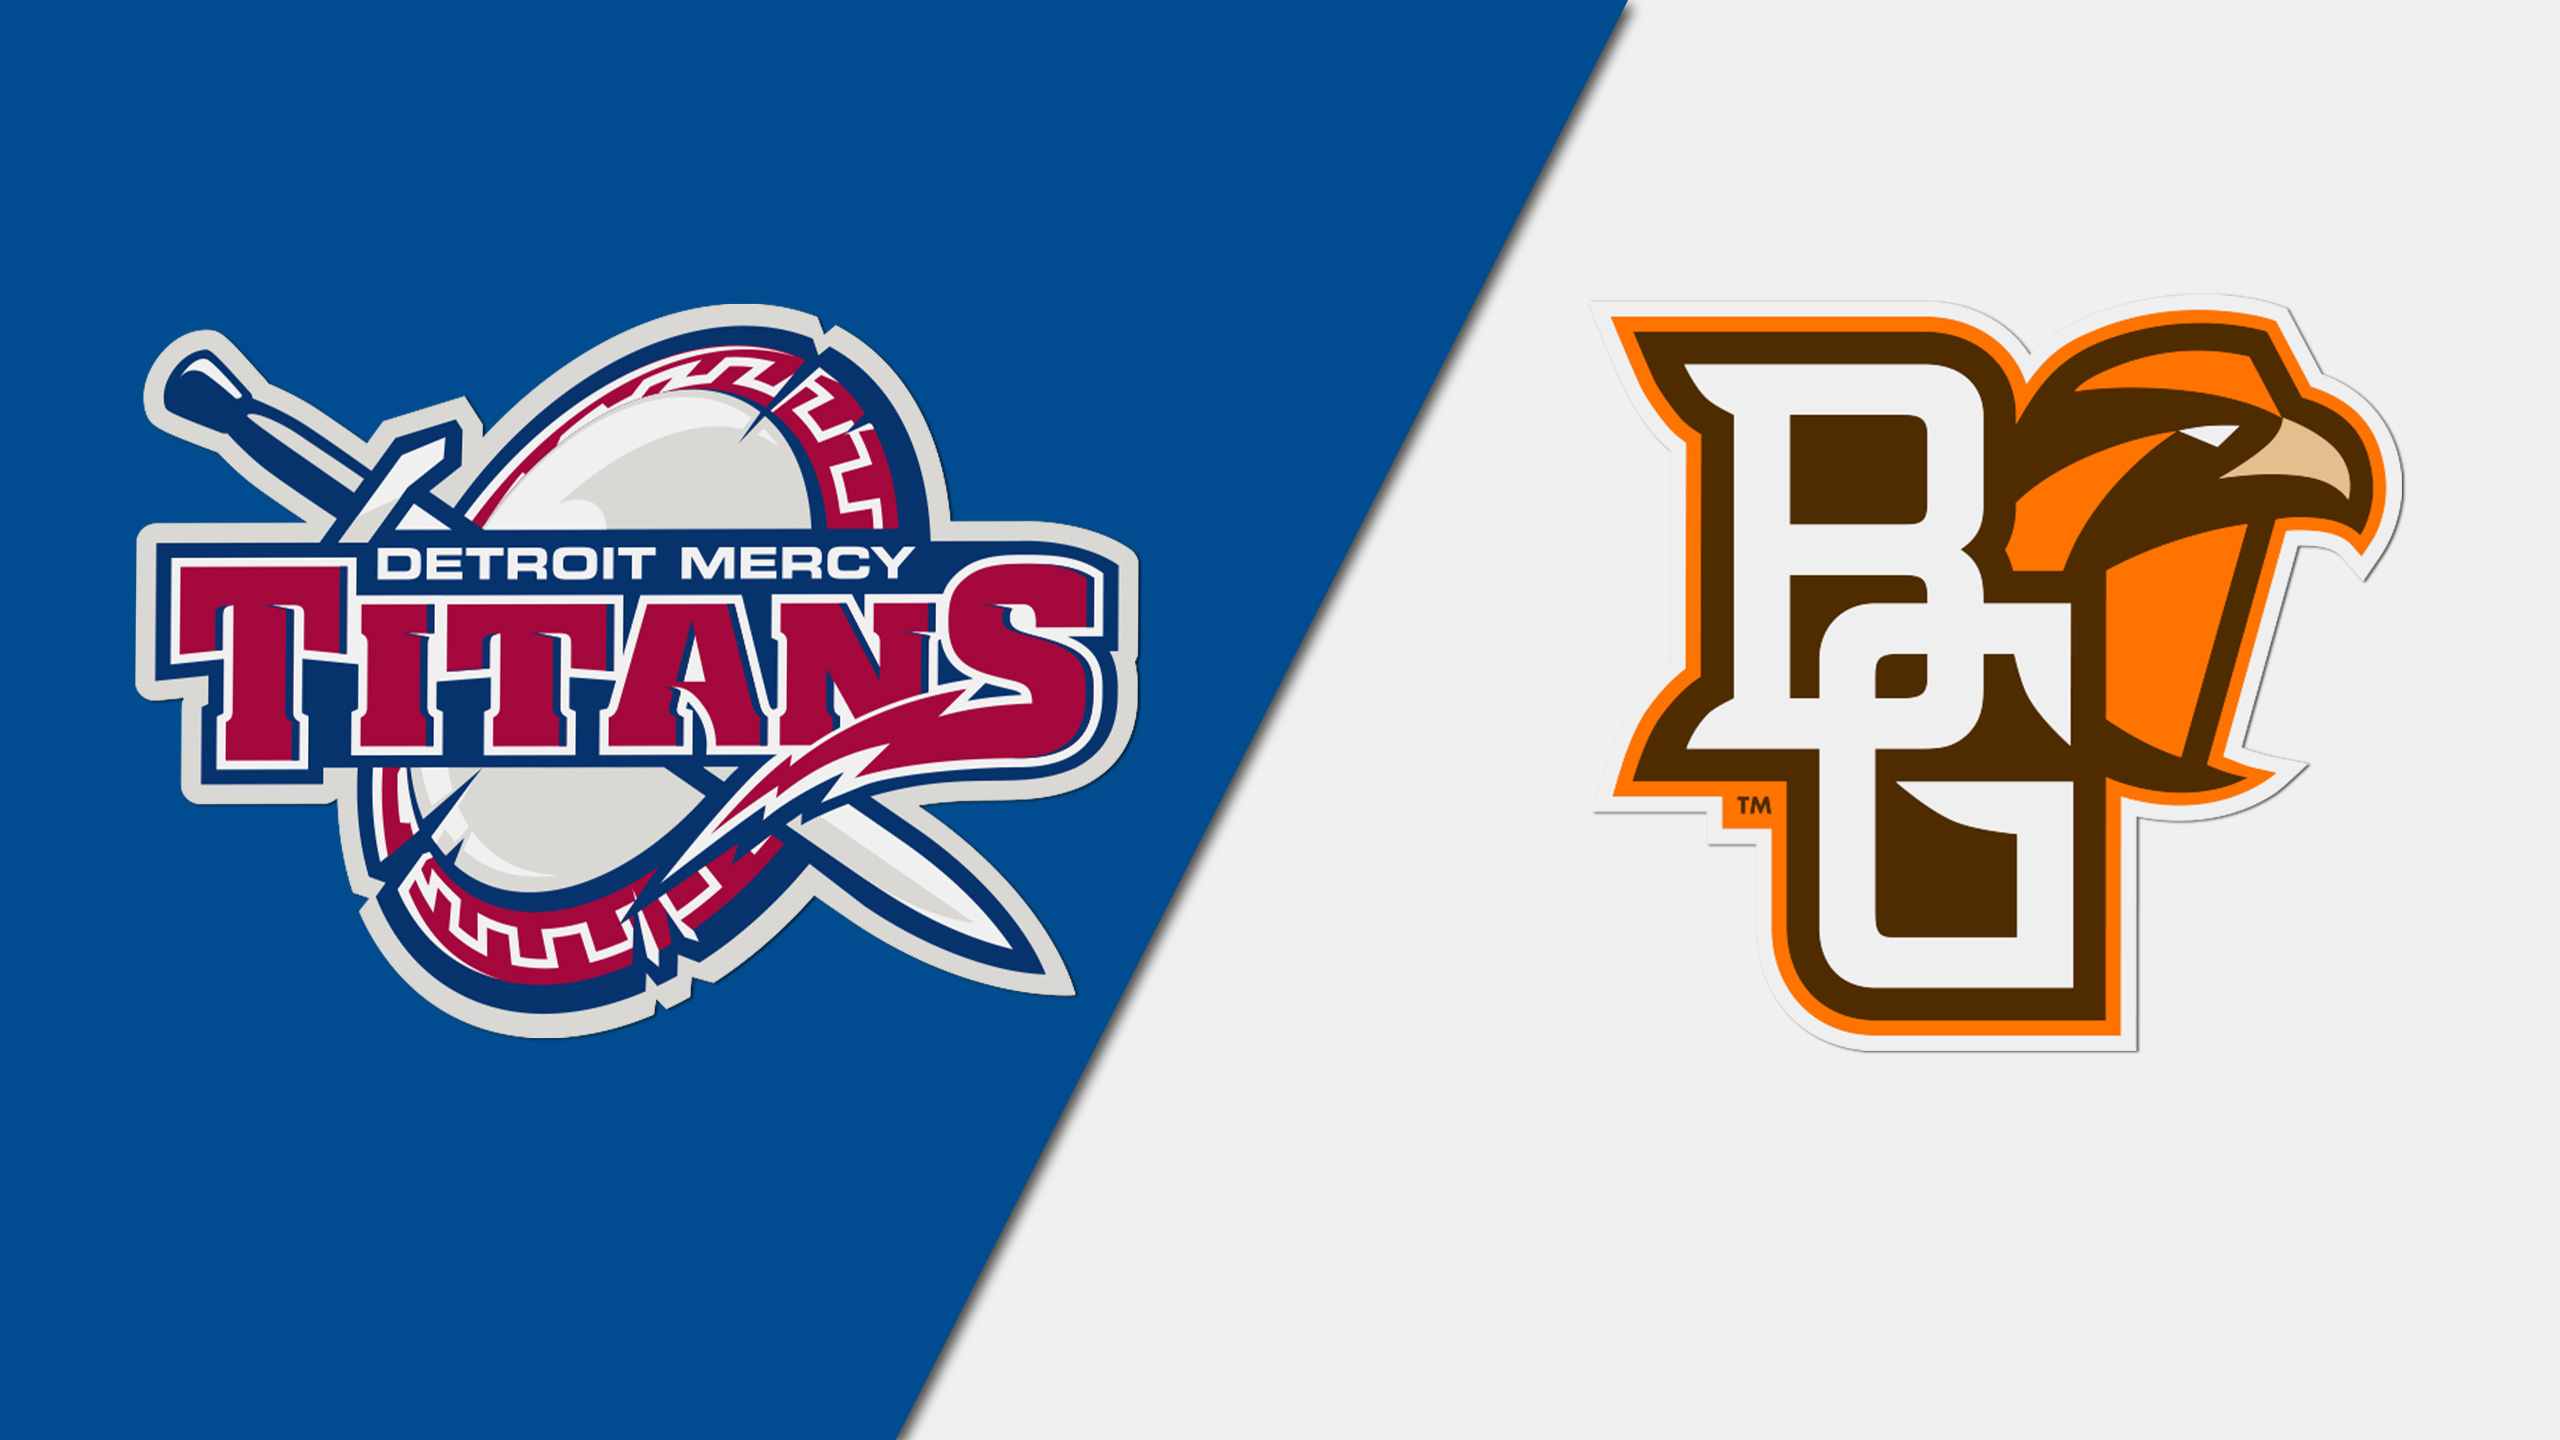 Detroit Mercy vs. Bowling Green (W Basketball)